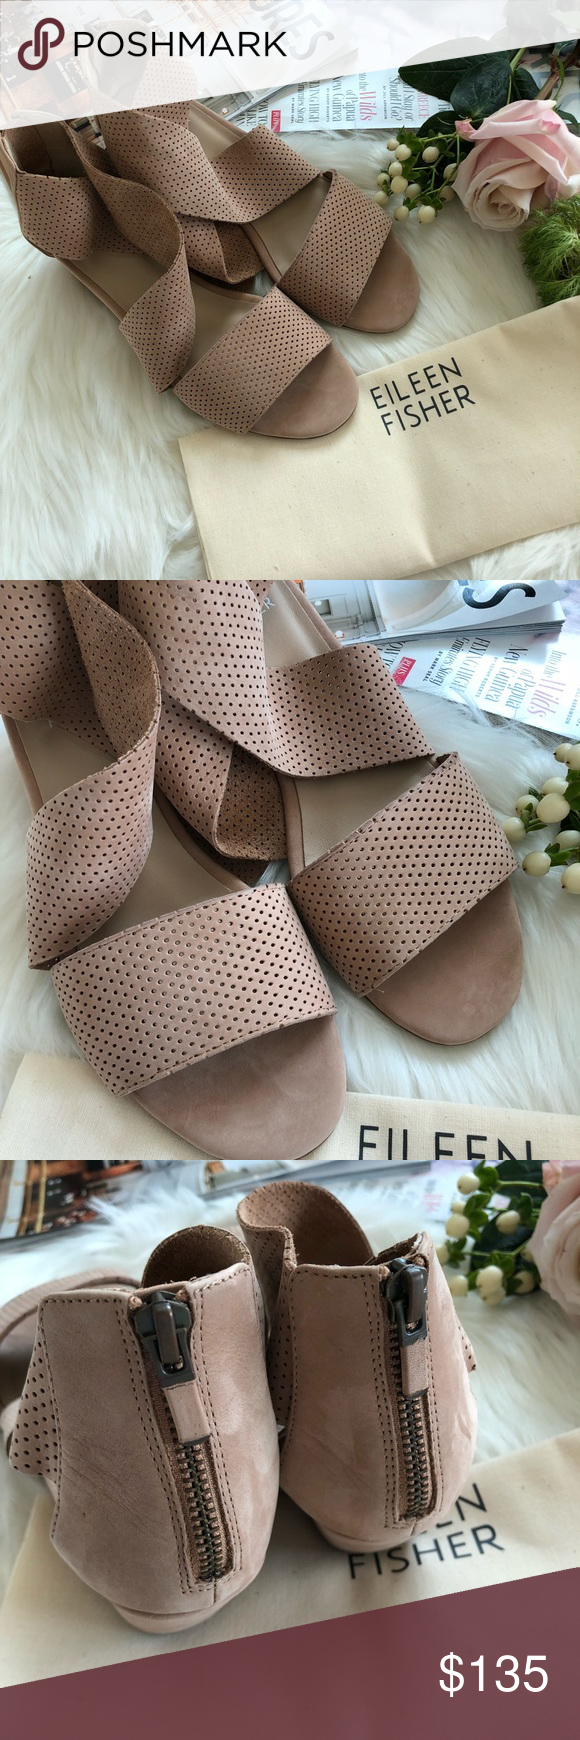 c2089c3739b2 Eileen Fisher Kes 2 Perforated Wedge Sandal 🌷Please Read the description  and review all photos